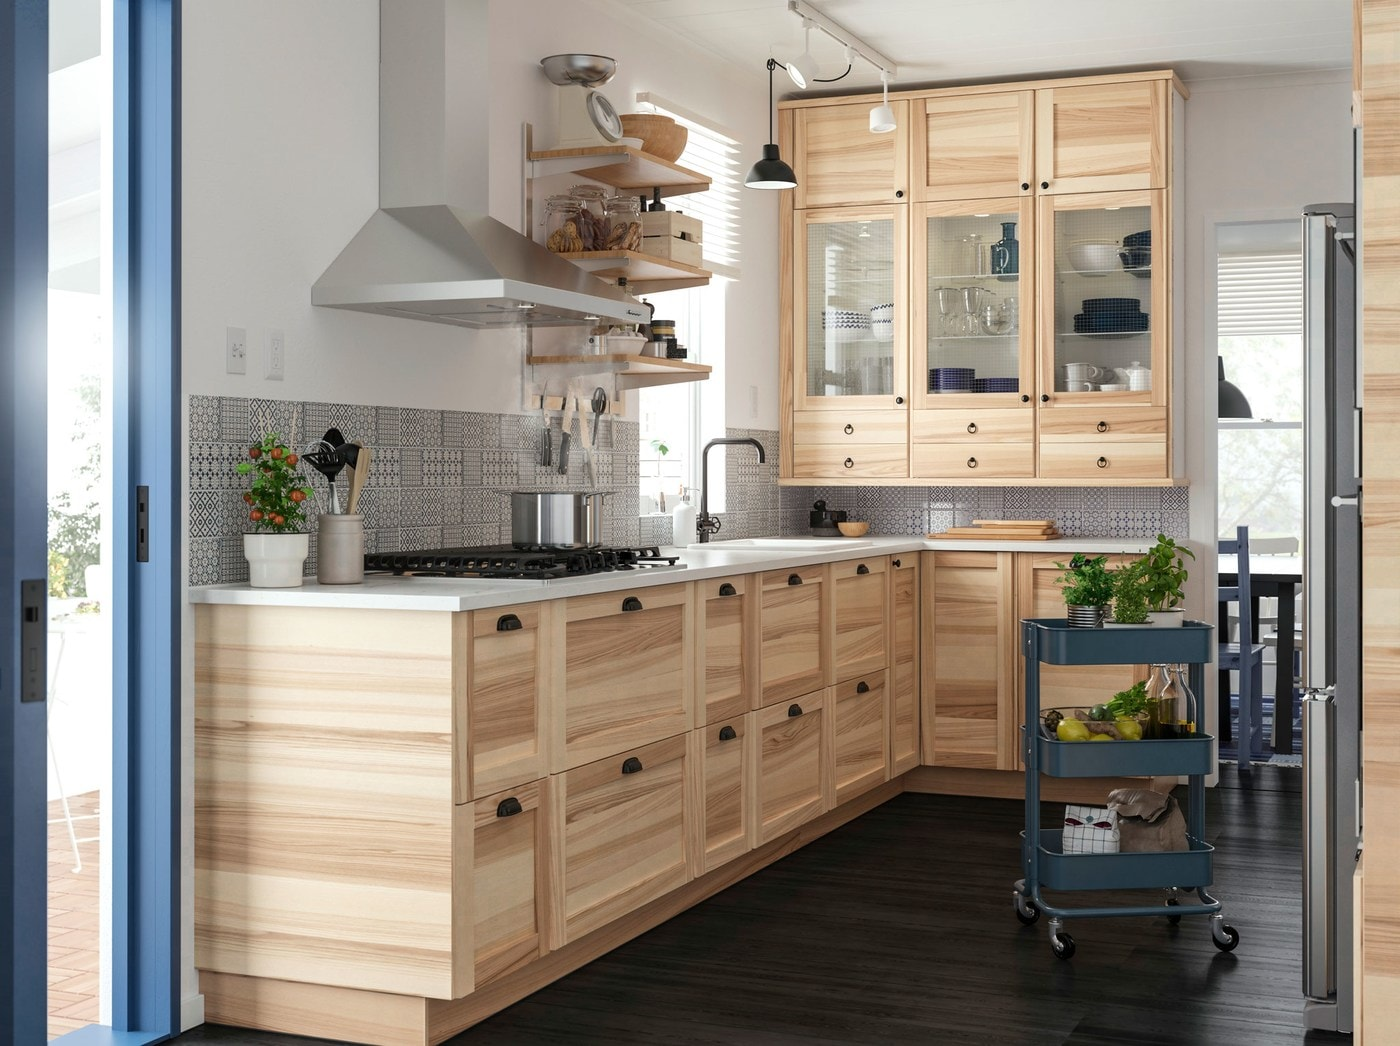 Create The Relaxing Feel That Nature Gives In Your Kitchen